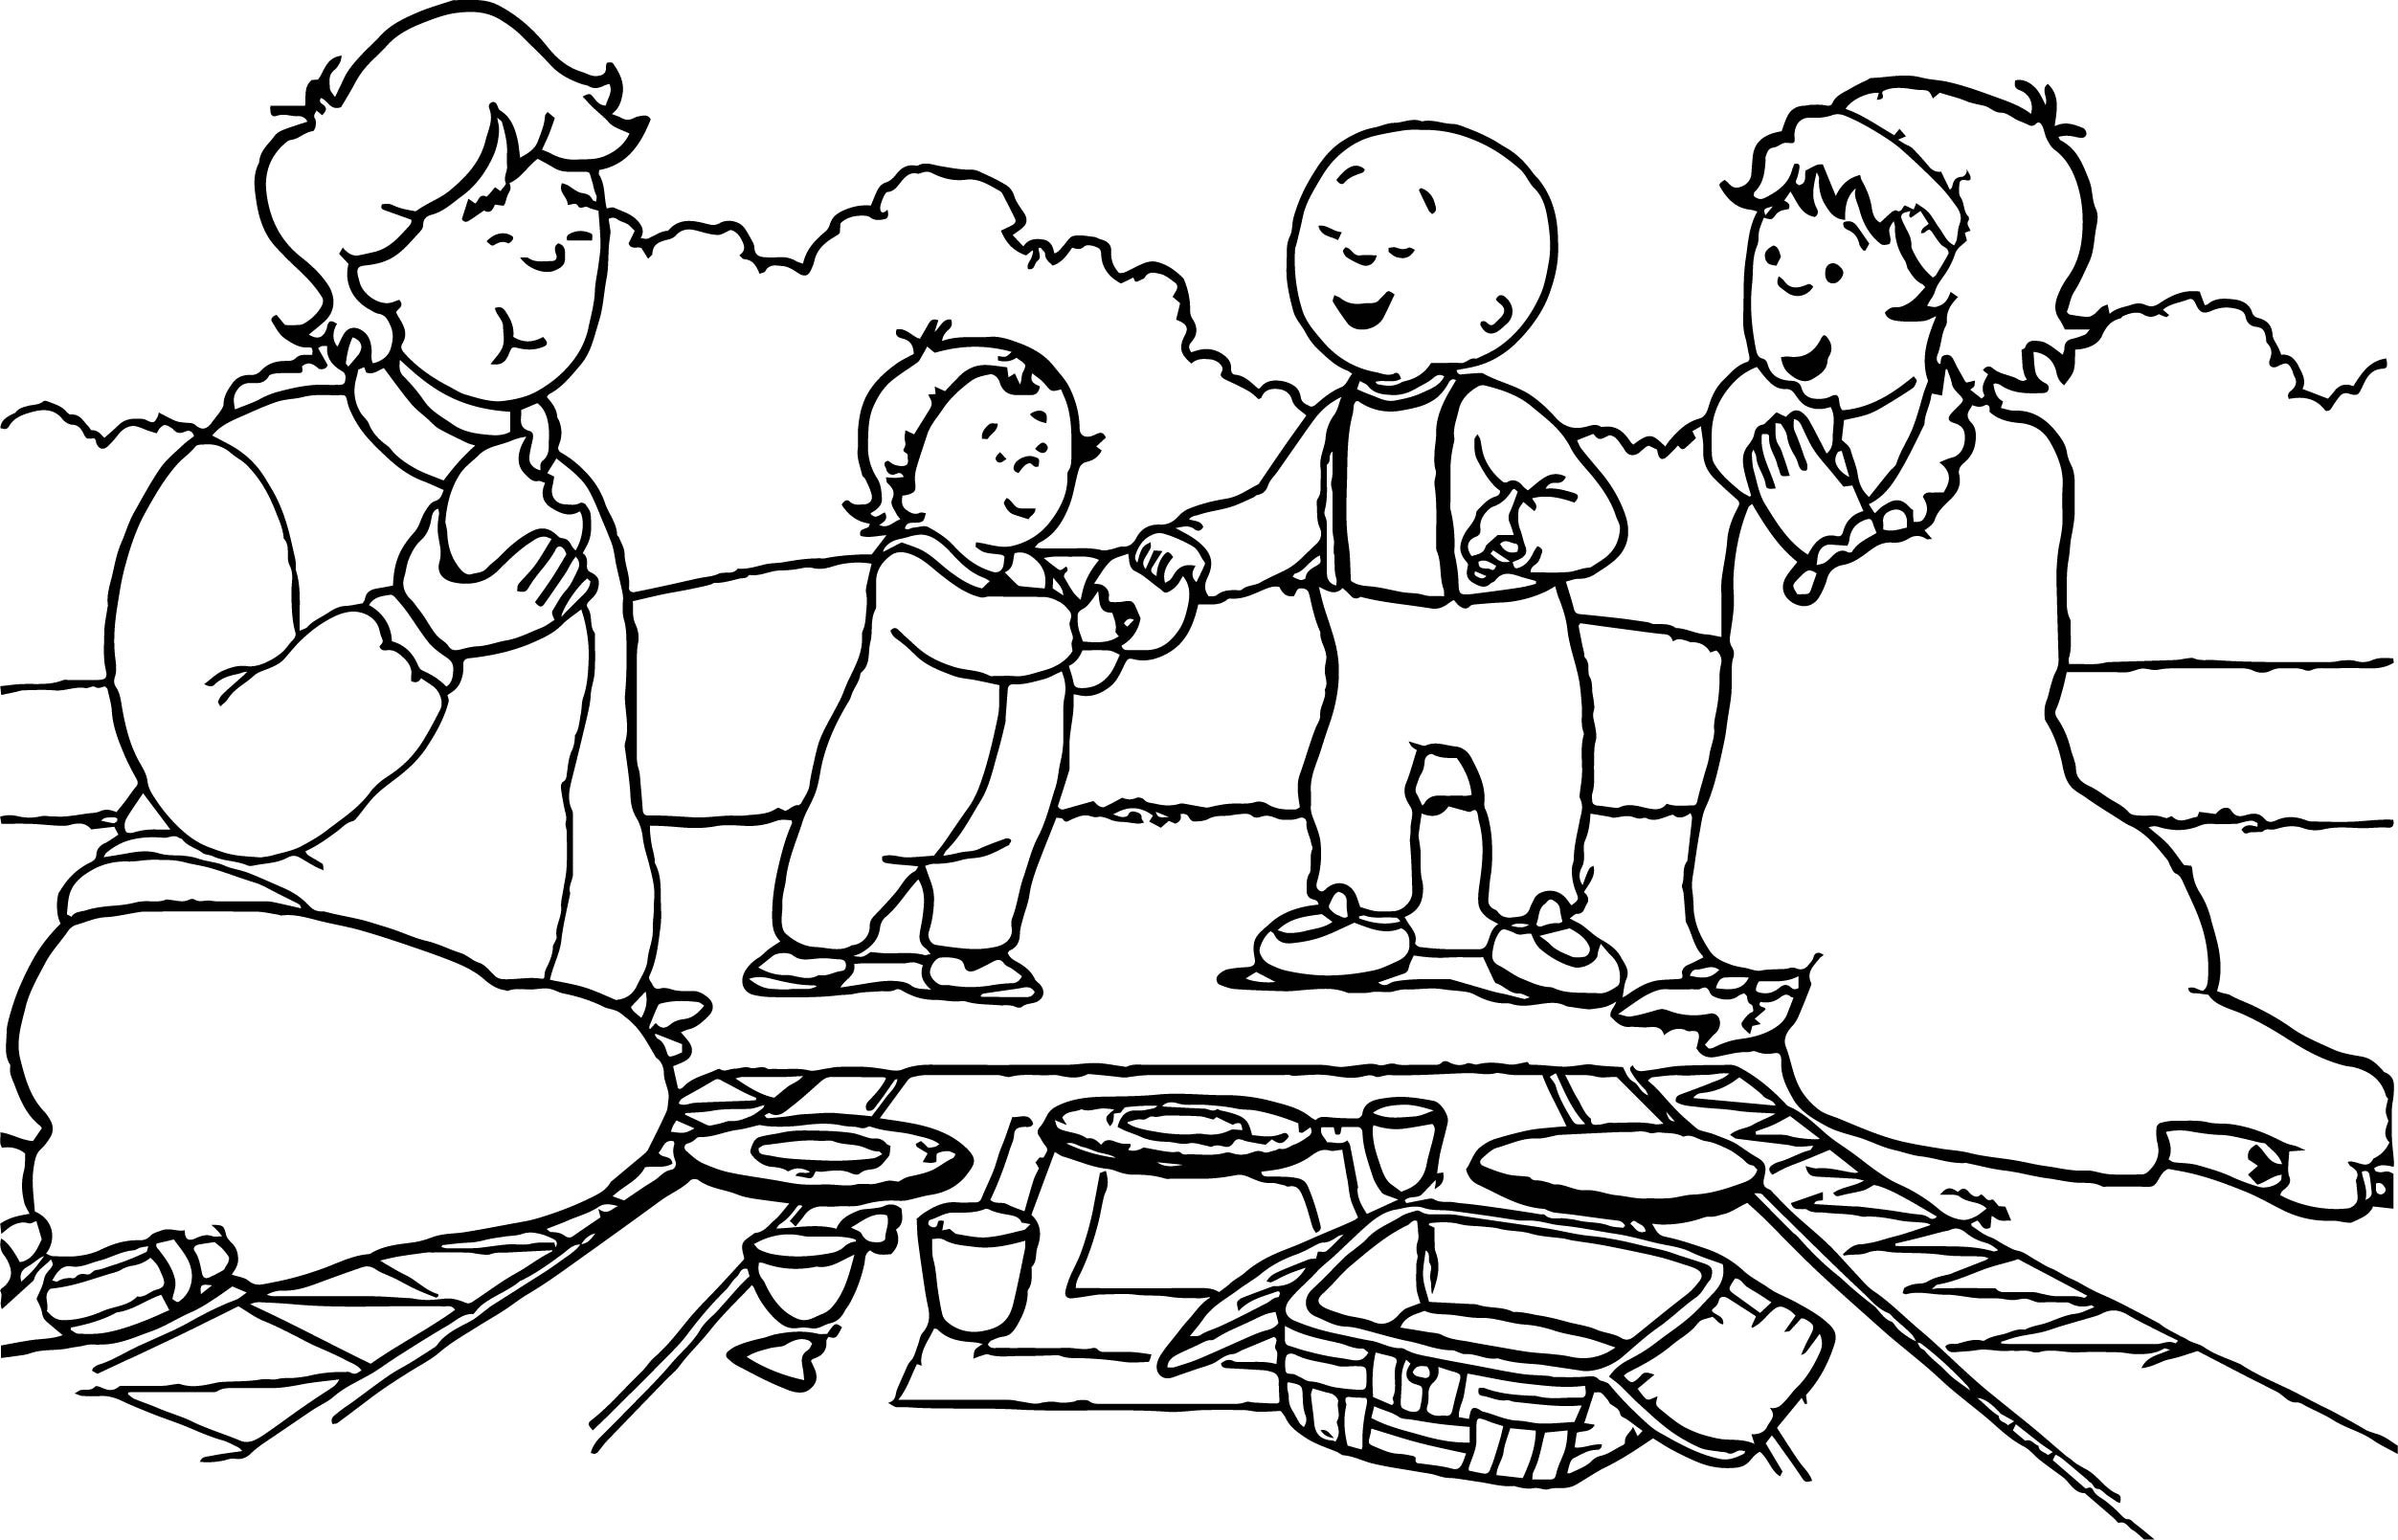 grandes differences entre series caillou coloring page - Caillou Coloring Pages